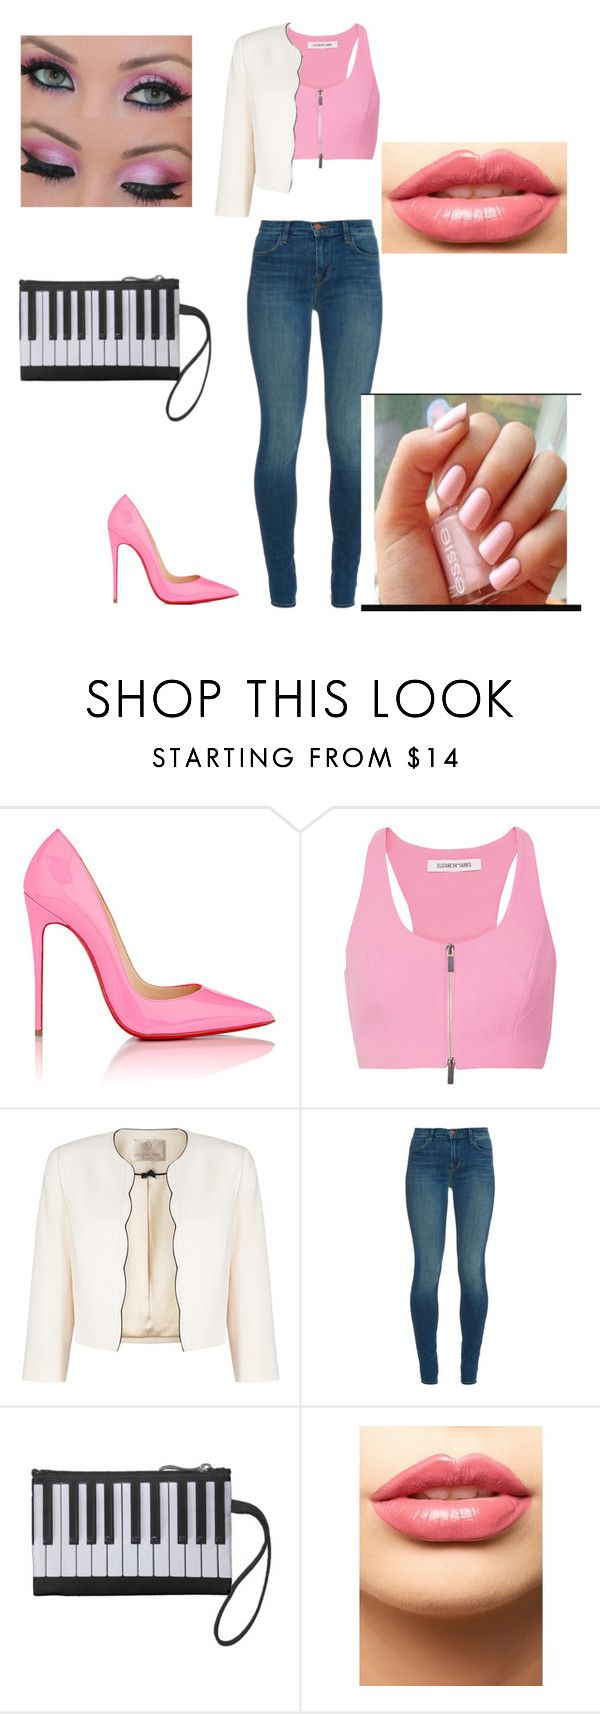 """Kimber Benton inspired Outfit"" by angielagutier ❤ liked on Polyvore featuring beauty, Christian Louboutin, Elizabeth and James, Jacques Vert, J Brand, LASplash and modern"